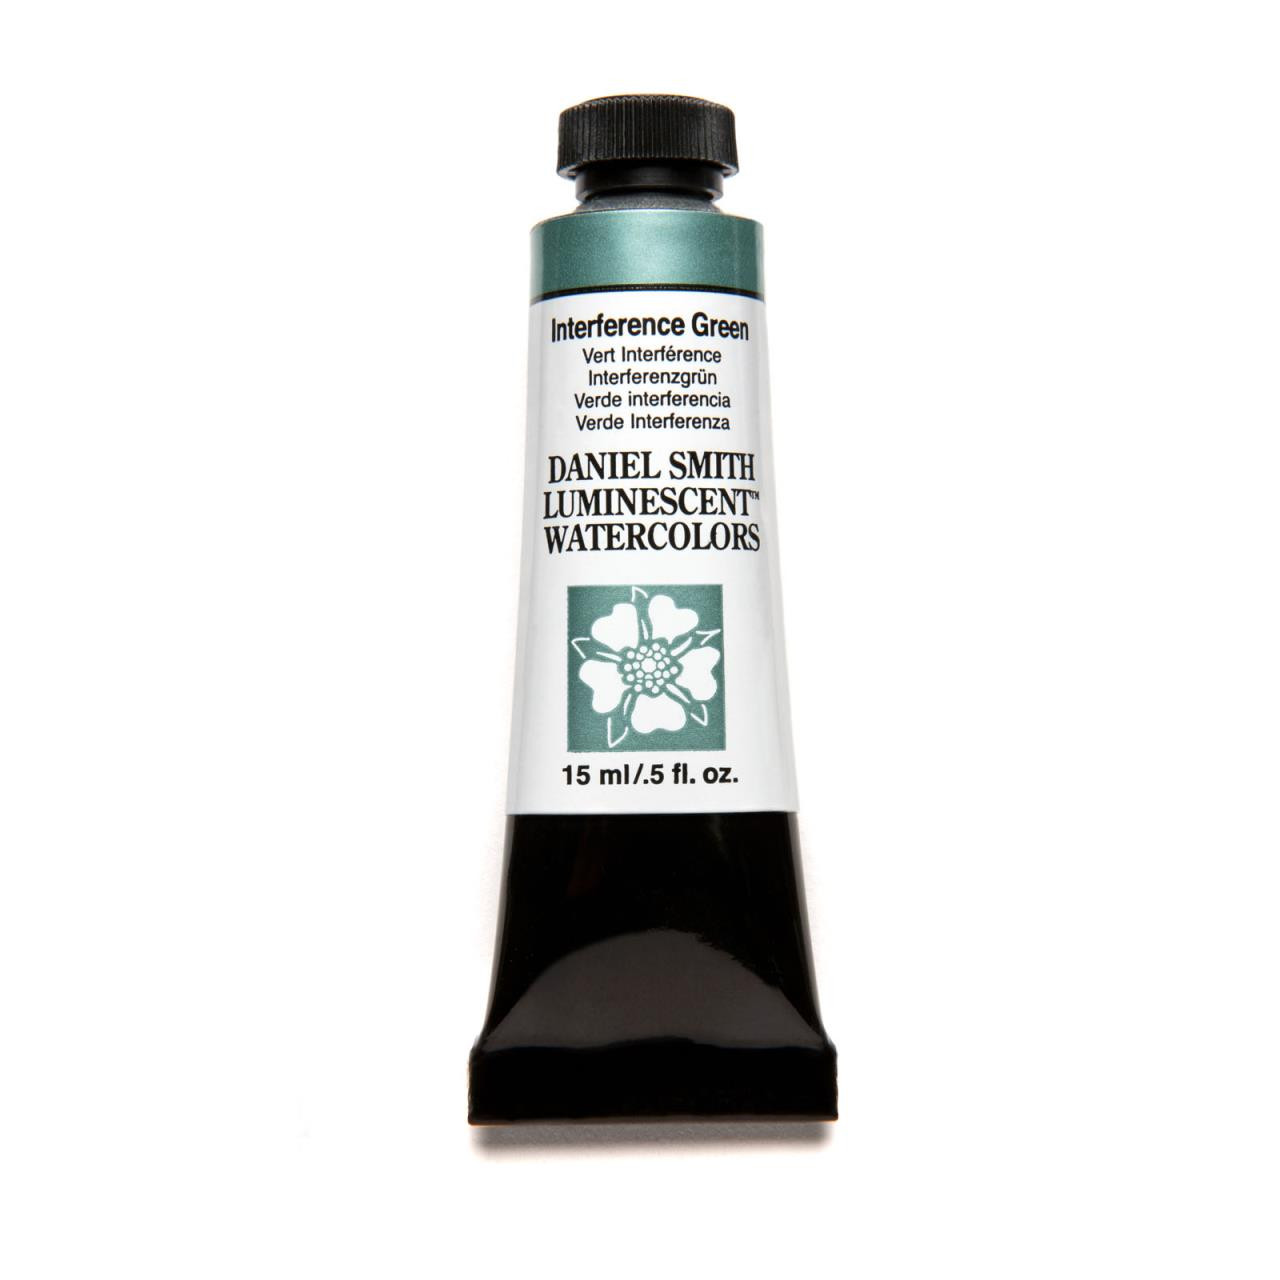 Interference Green (Luminescent), DANIEL SMITH Extra Fine Watercolors 15ml Tubes -